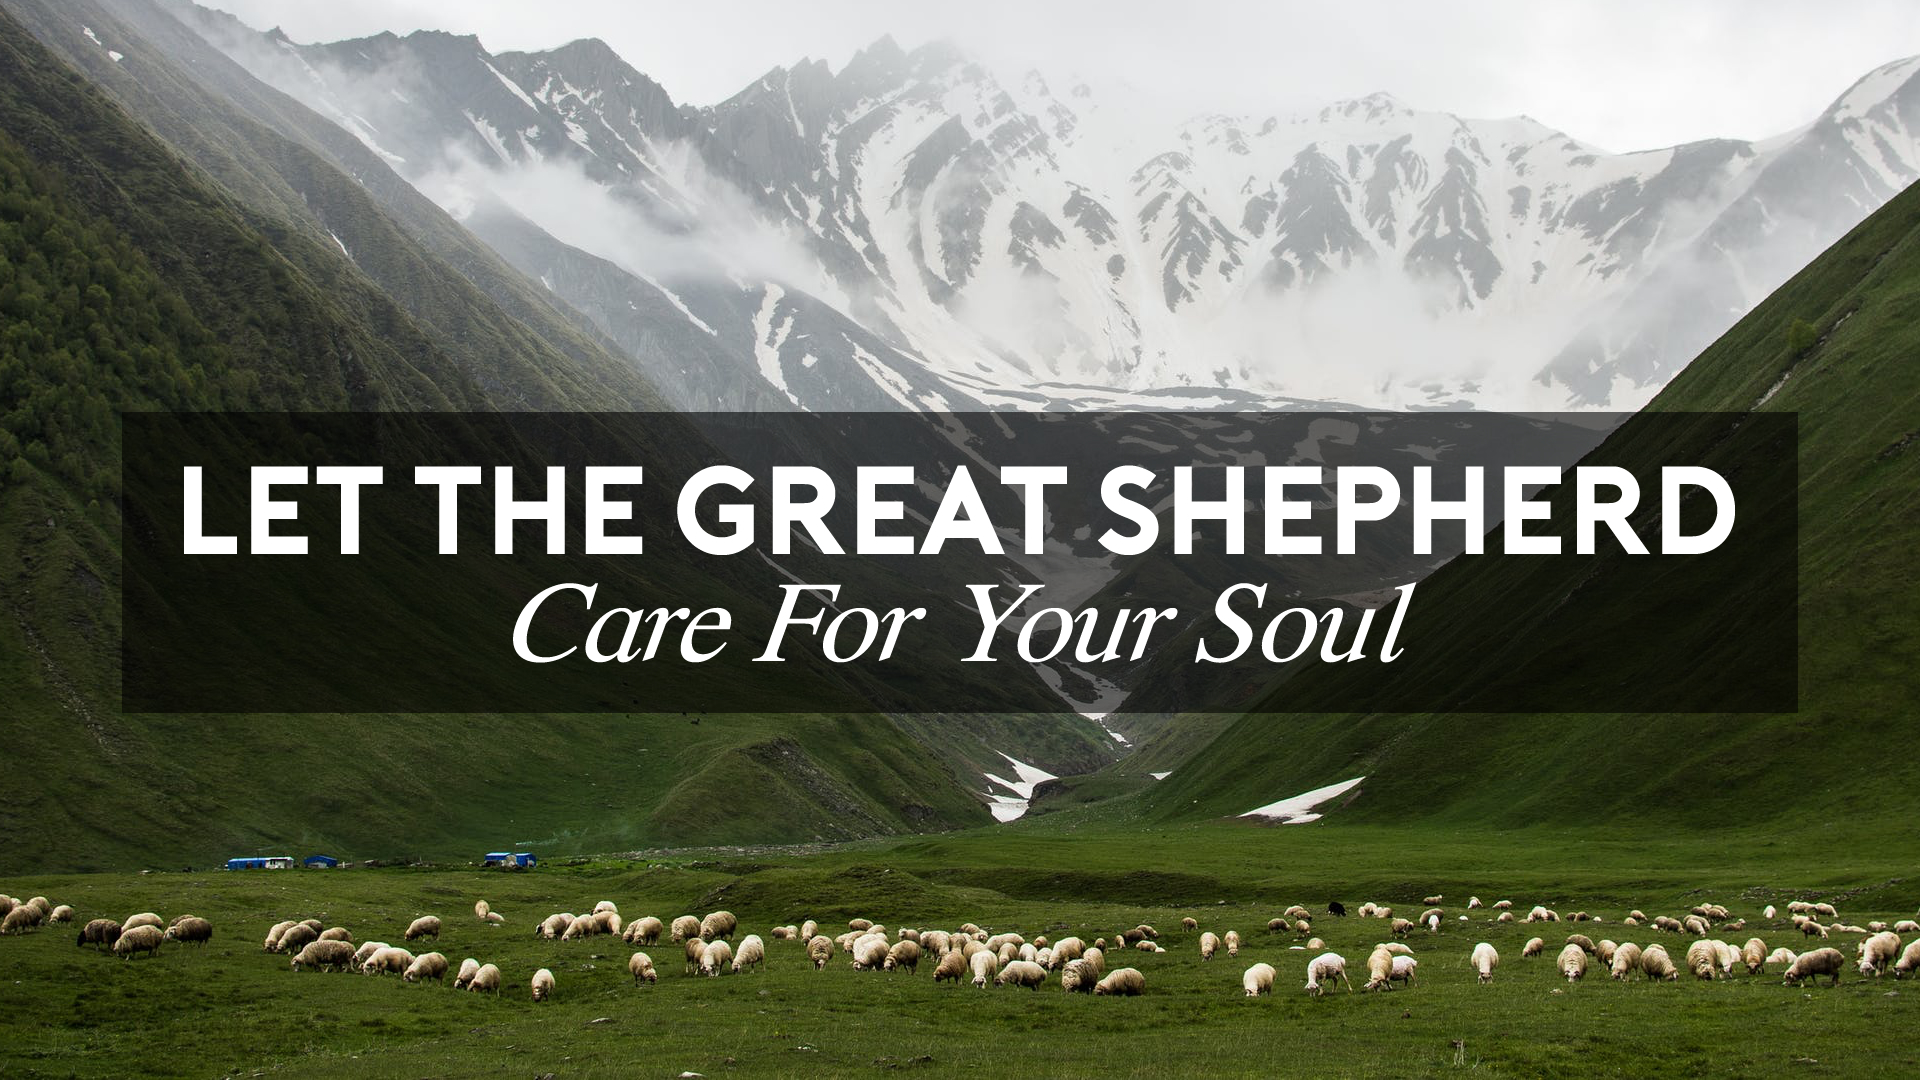 Let the Great Shepherd Care for Your Soul.jpg